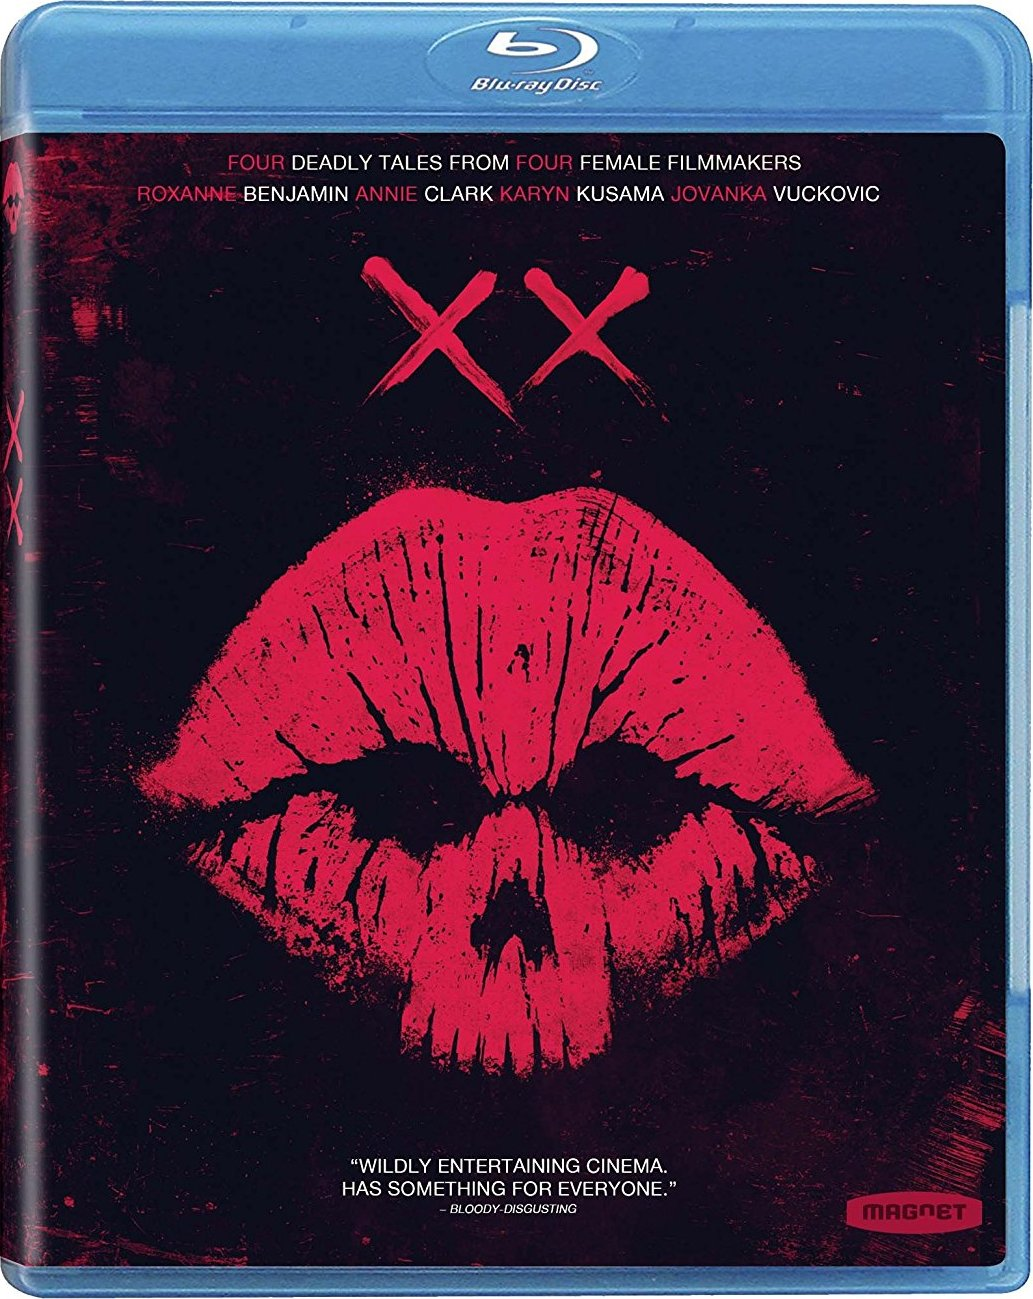 XX (2017) poster image